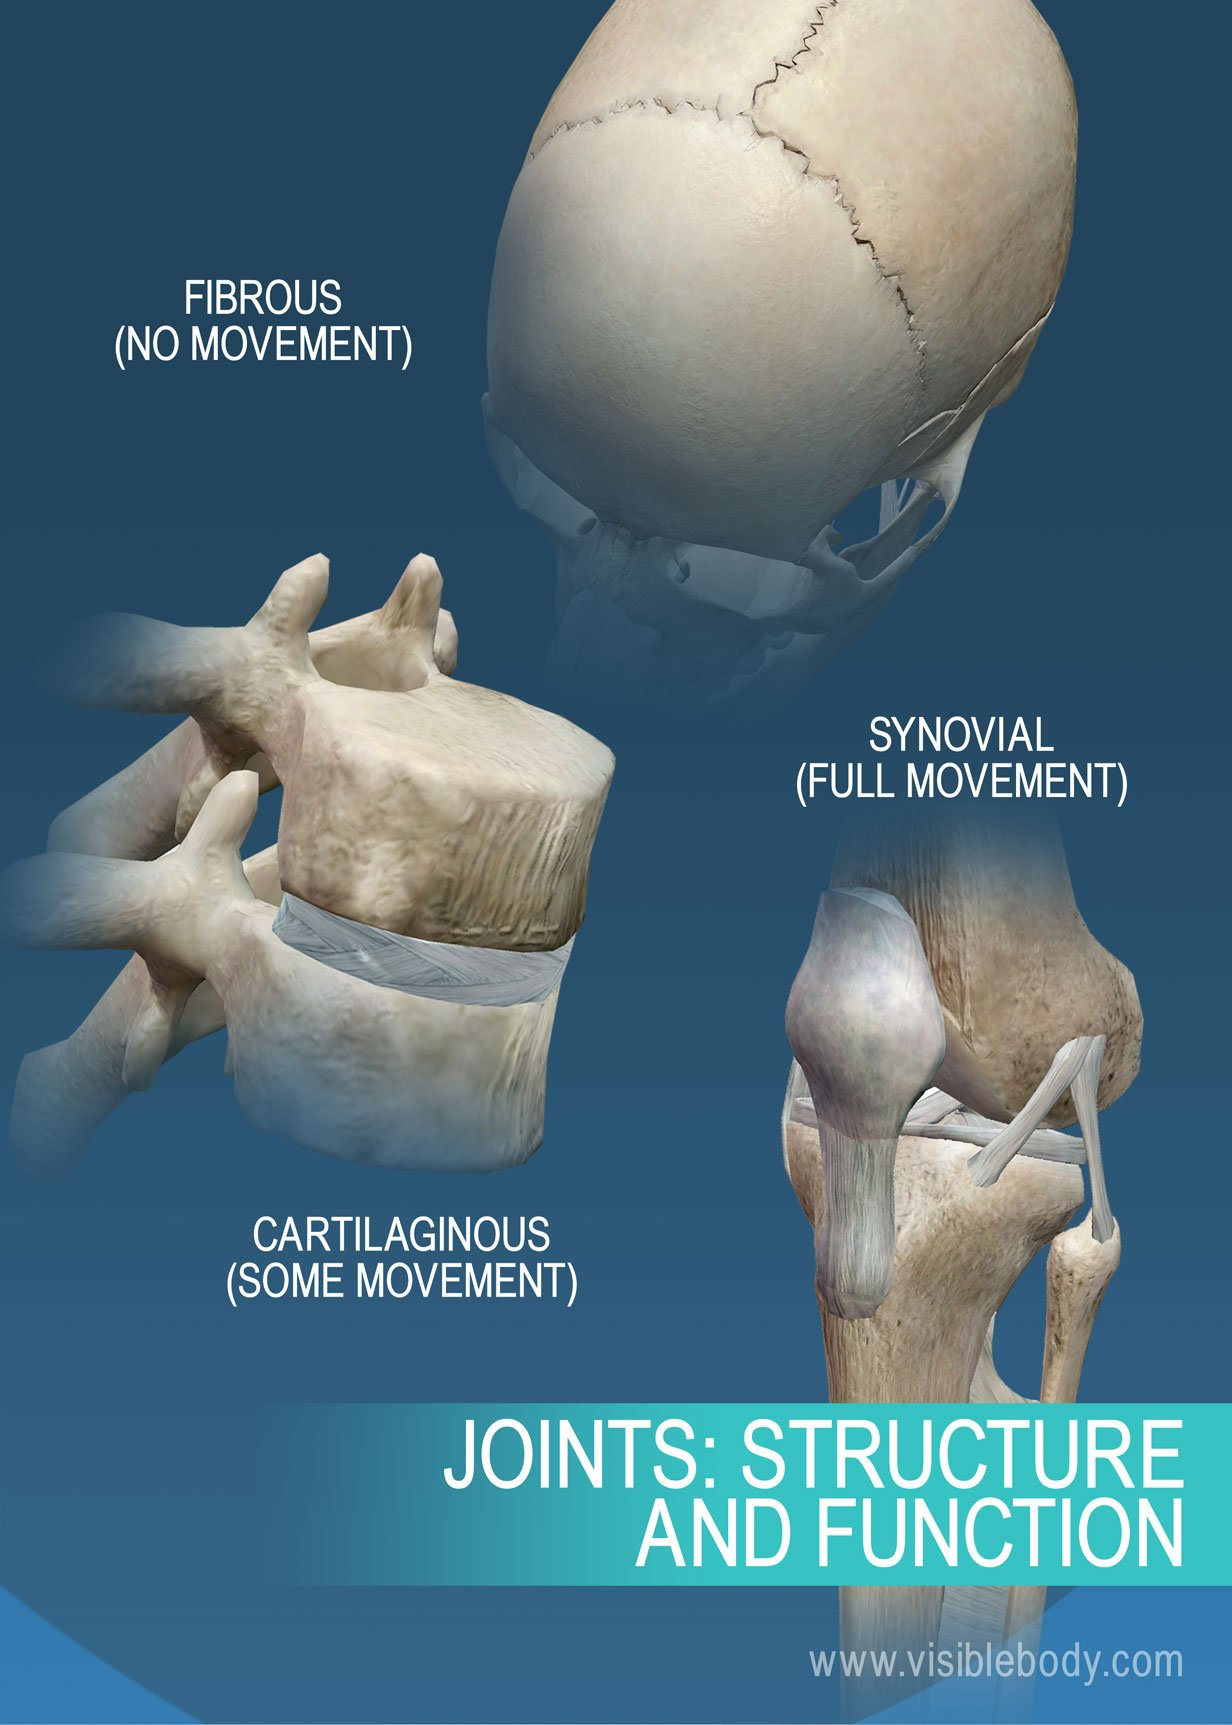 Joints And Ligaments Learn Skeleton Anatomy A slightly movable joint (see amphiarthrosis) in which the surfaces of the bones are separated synchondrosis. a dictionary of nursing. joints and ligaments learn skeleton